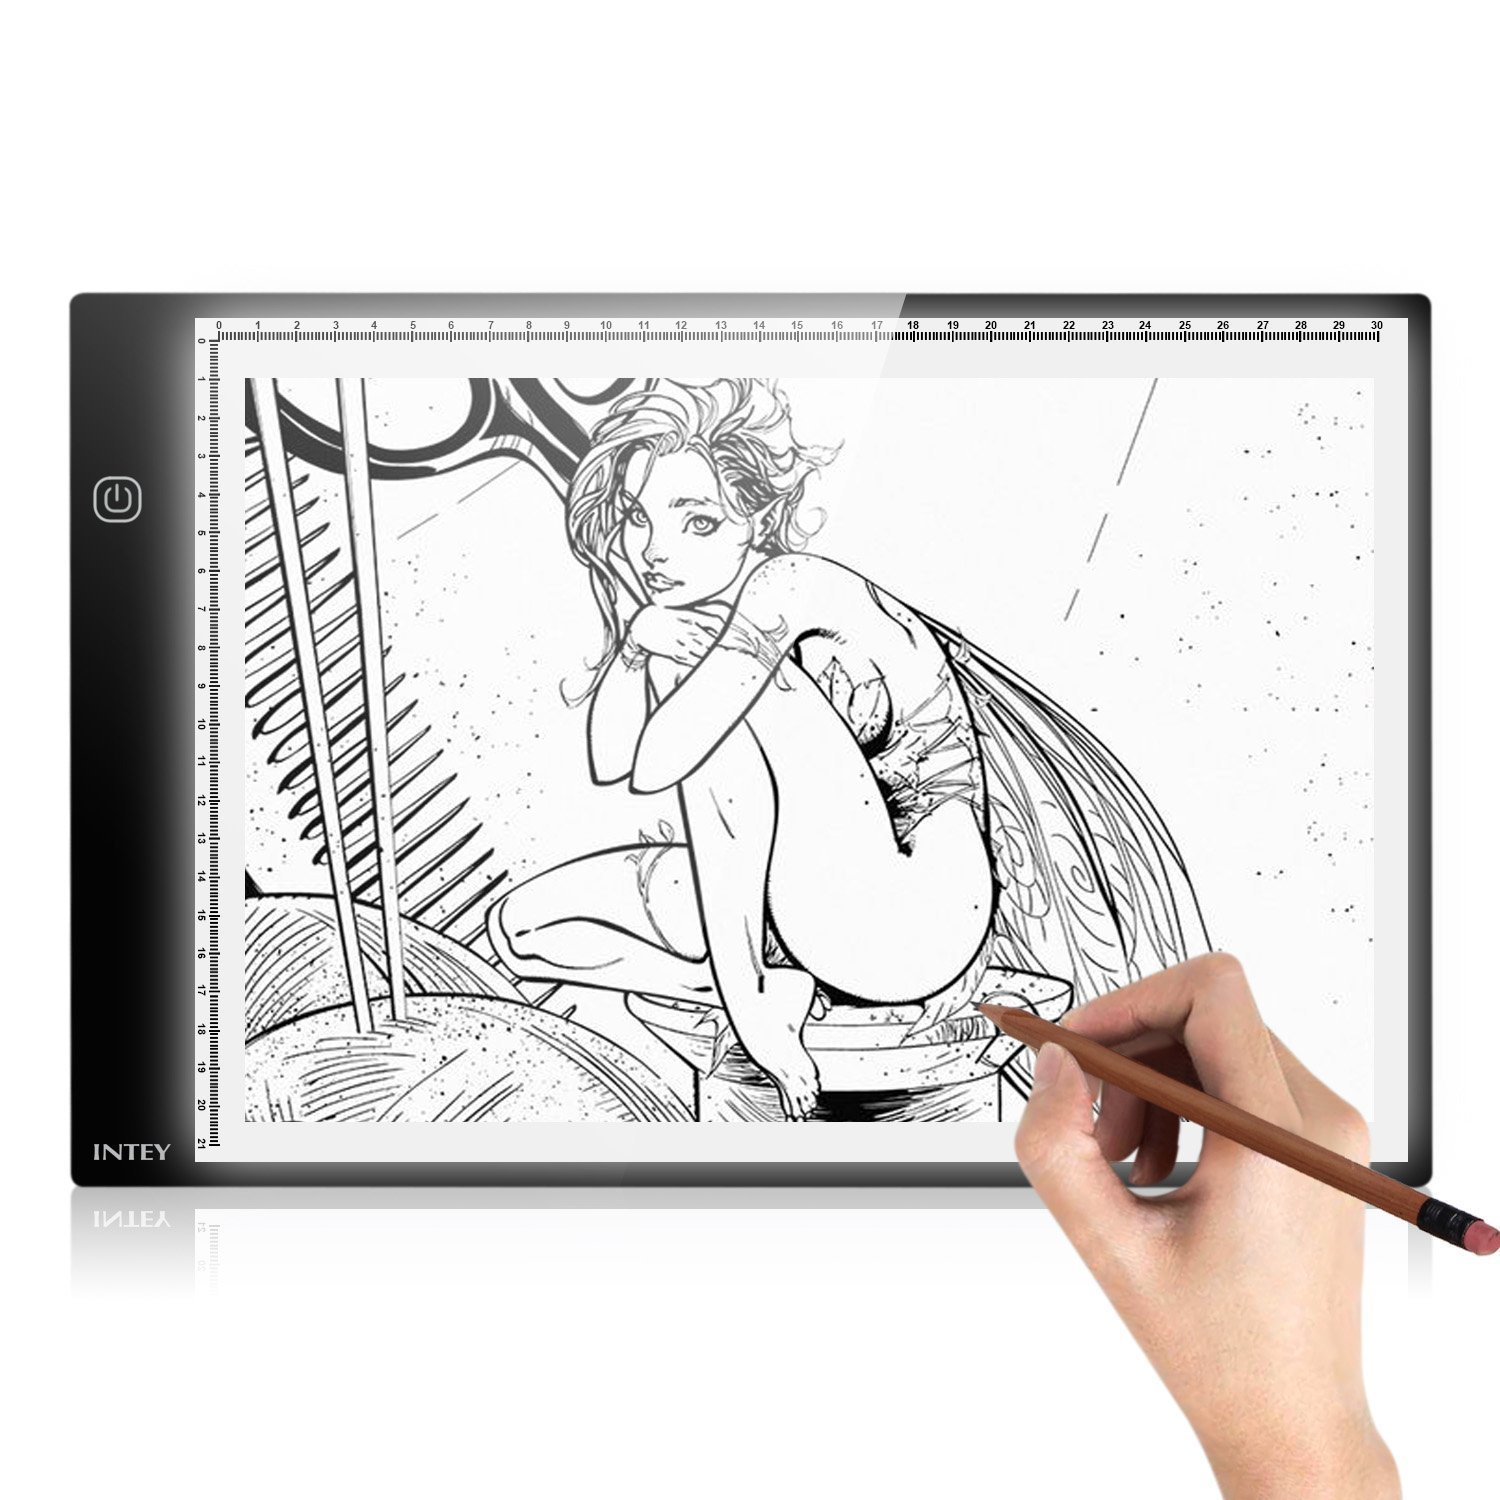 LED Light Box A2 Stepless Dimming Control Tracing Board with USB Power Cable Pencils Clips for Kids Artists Drawing Sketching Animation